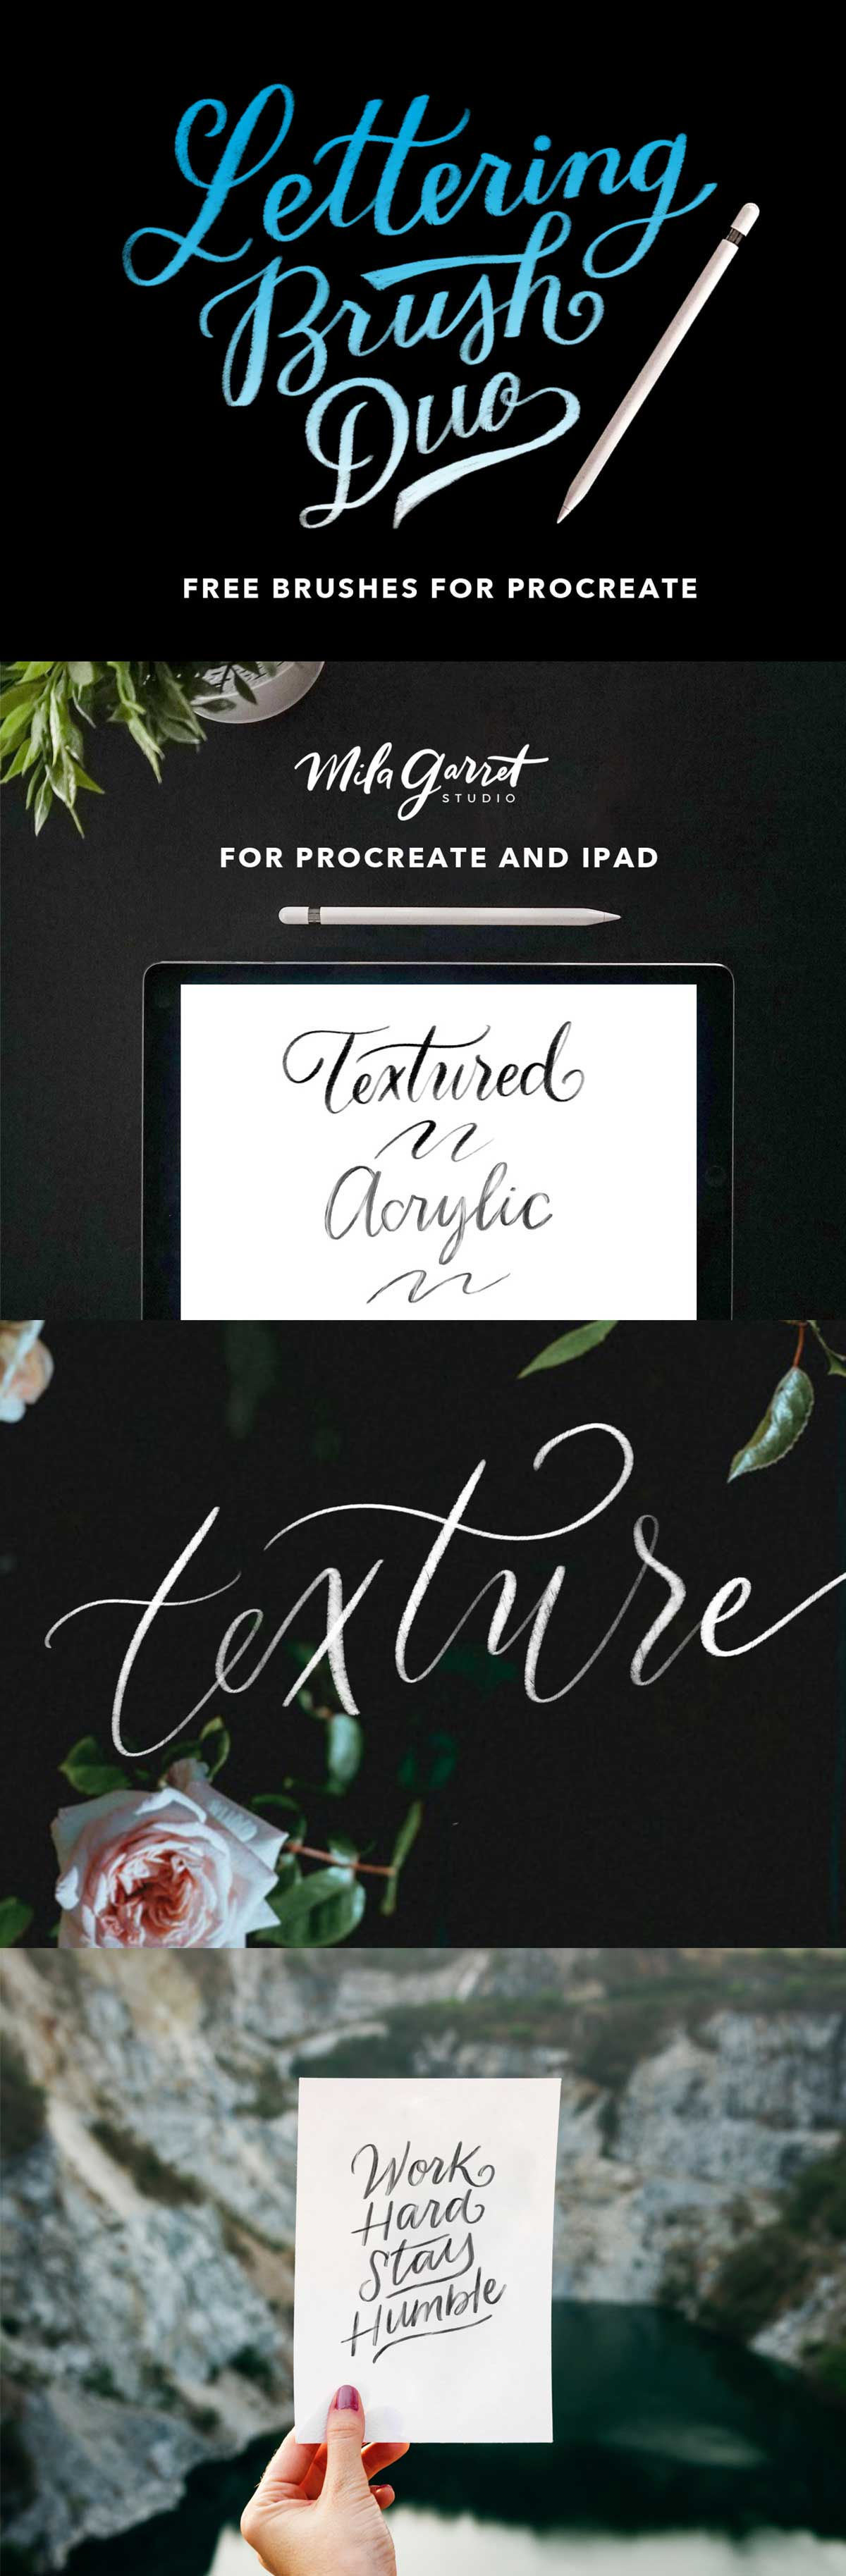 FREE PROCREATE LETTERING BRUSH DUO